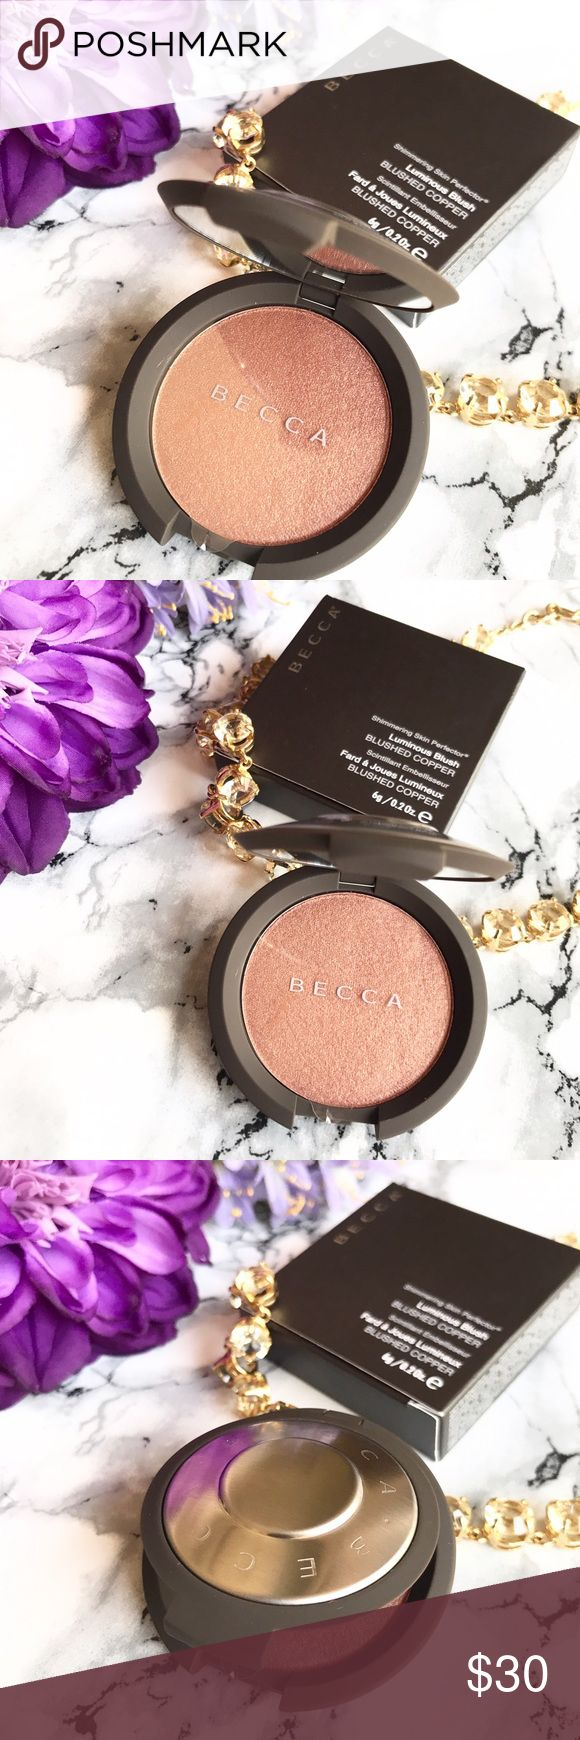 🆕 NEW 🌷 Becca Skin Perfector Pressed Blushed Cop 🆕 NEW 🌷 Becca Shimmering Skin Perfector Pressed in BLUSHED COPPER 🍃 Full Size * Brand New * Never Used * Never Swatched 🍃 Cult Favorite for Medium to Dark Skin tone! 💕 FIRM PRICE 💕 Always NEW, Always AUTHENTIC 💕 BECCA Makeup Luminizer